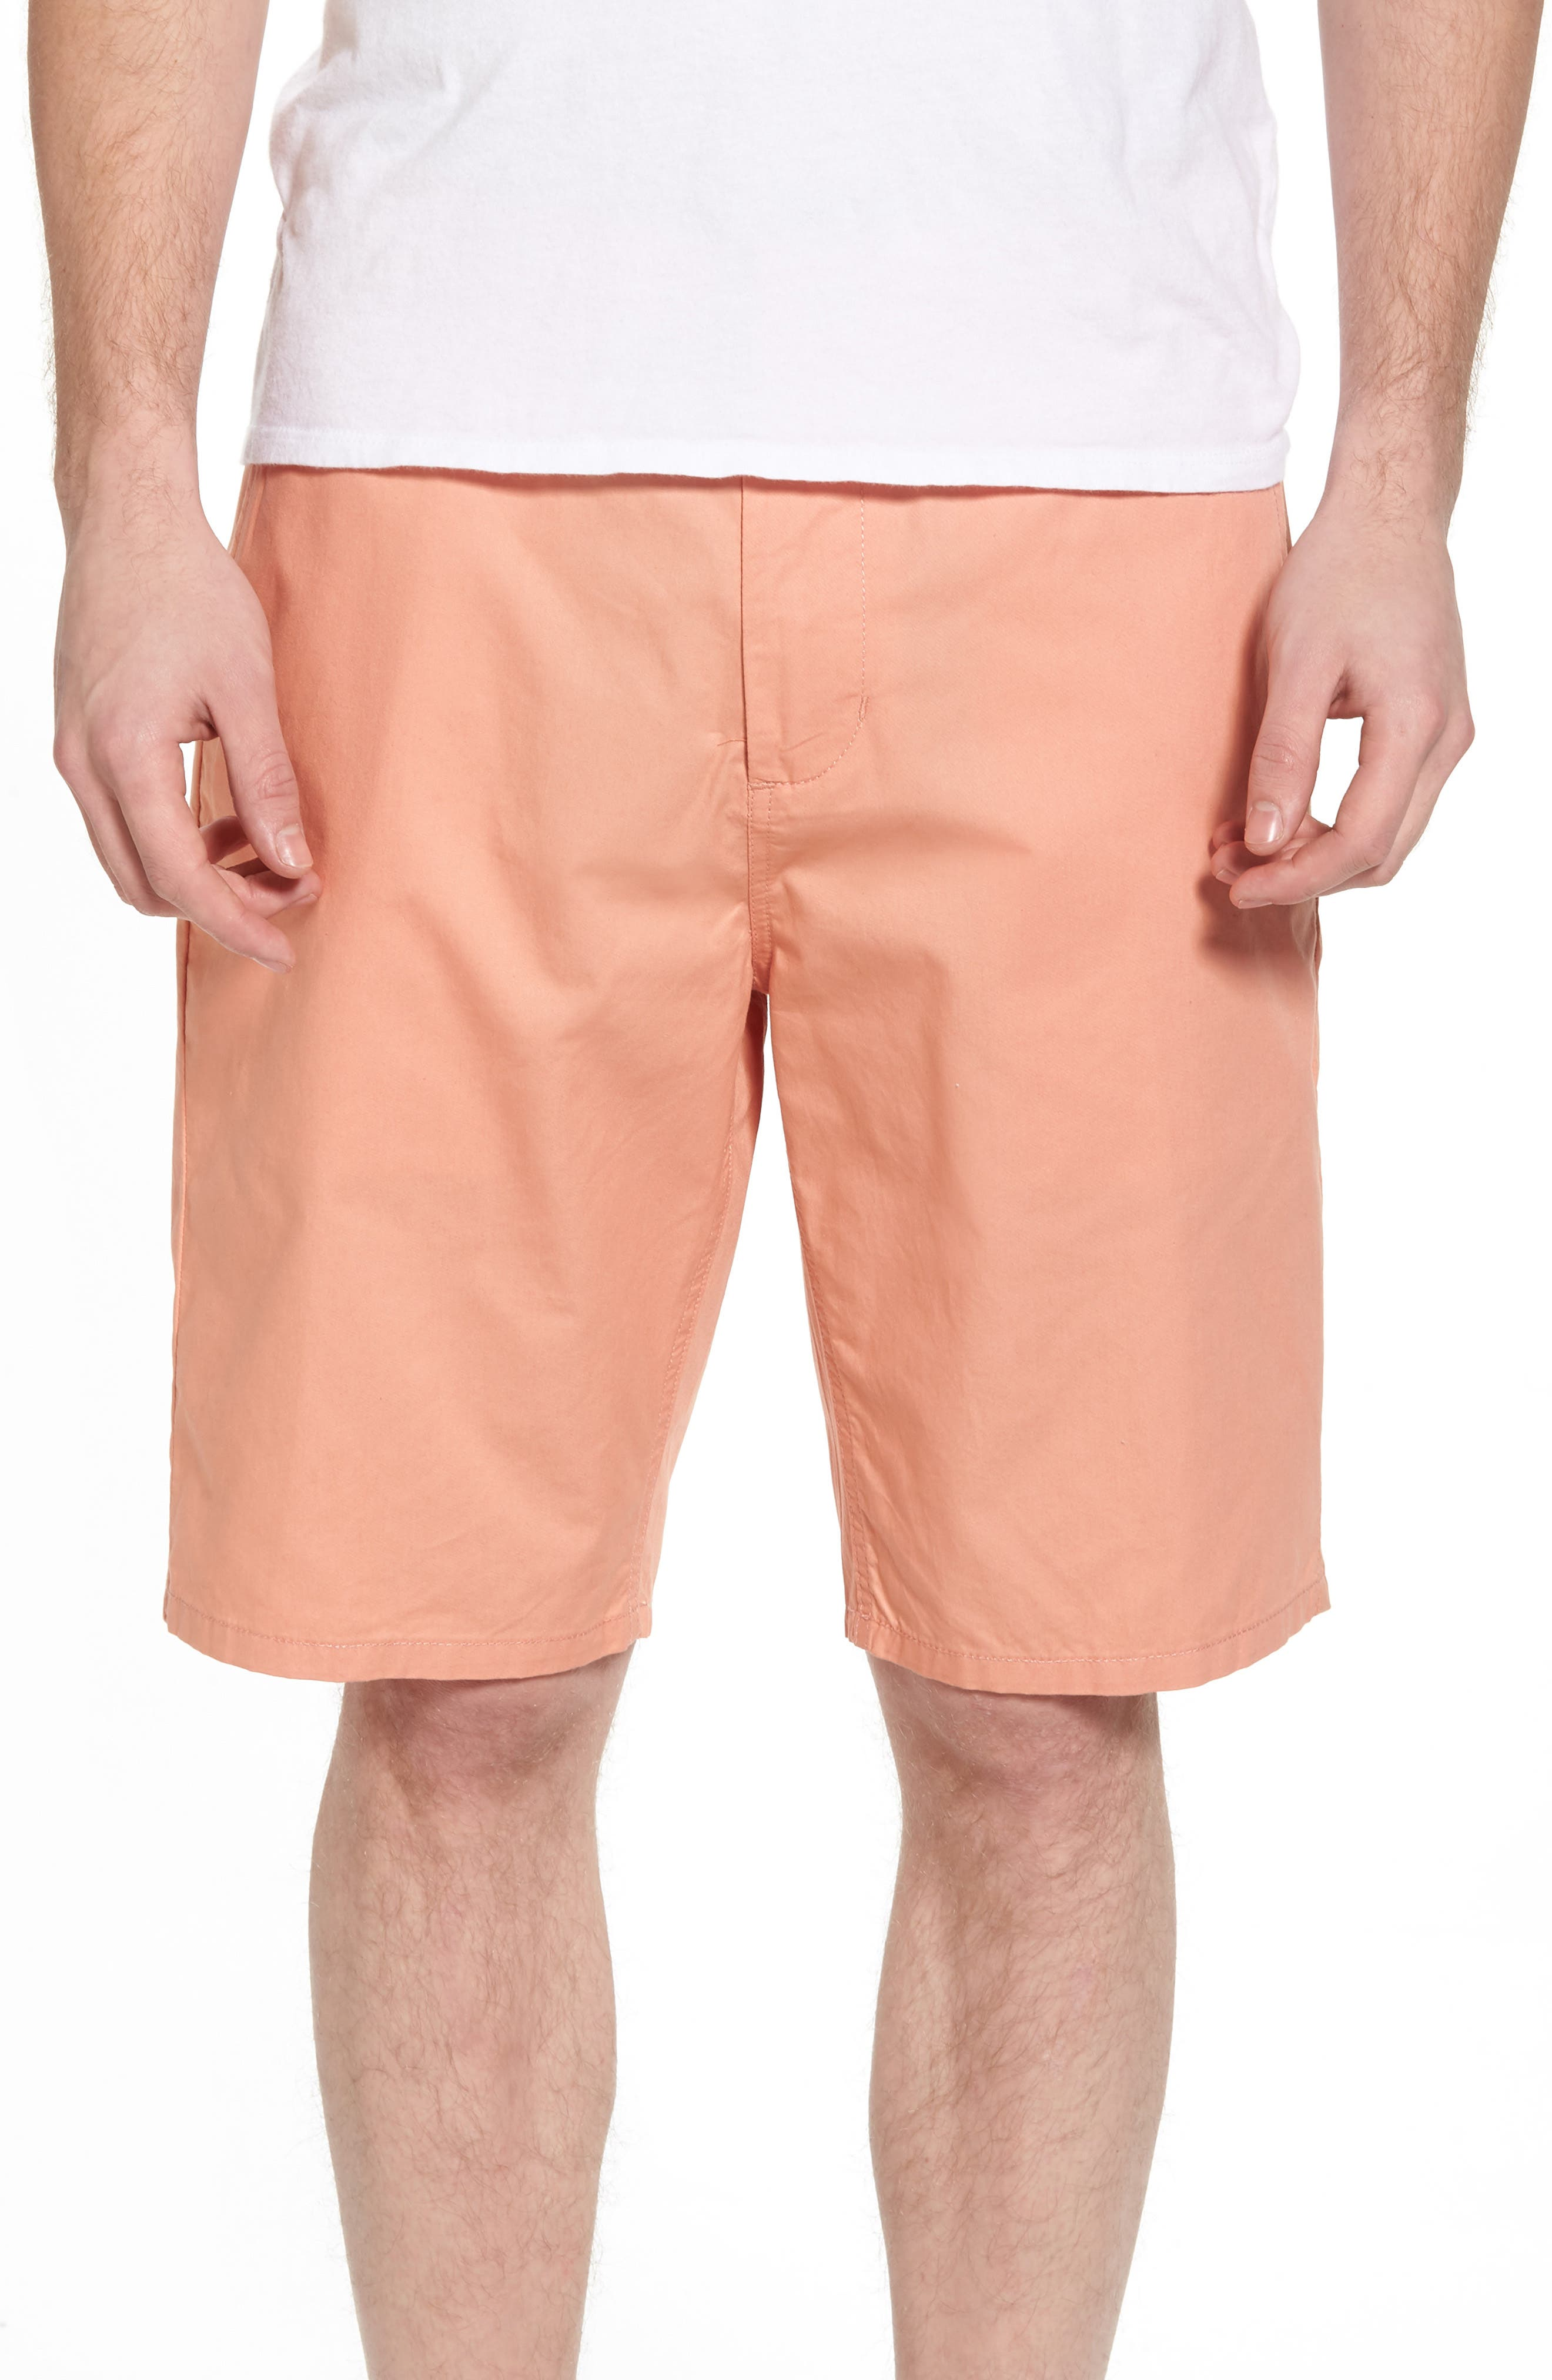 Straggler Light Shorts,                             Main thumbnail 1, color,                             Dusty Rose